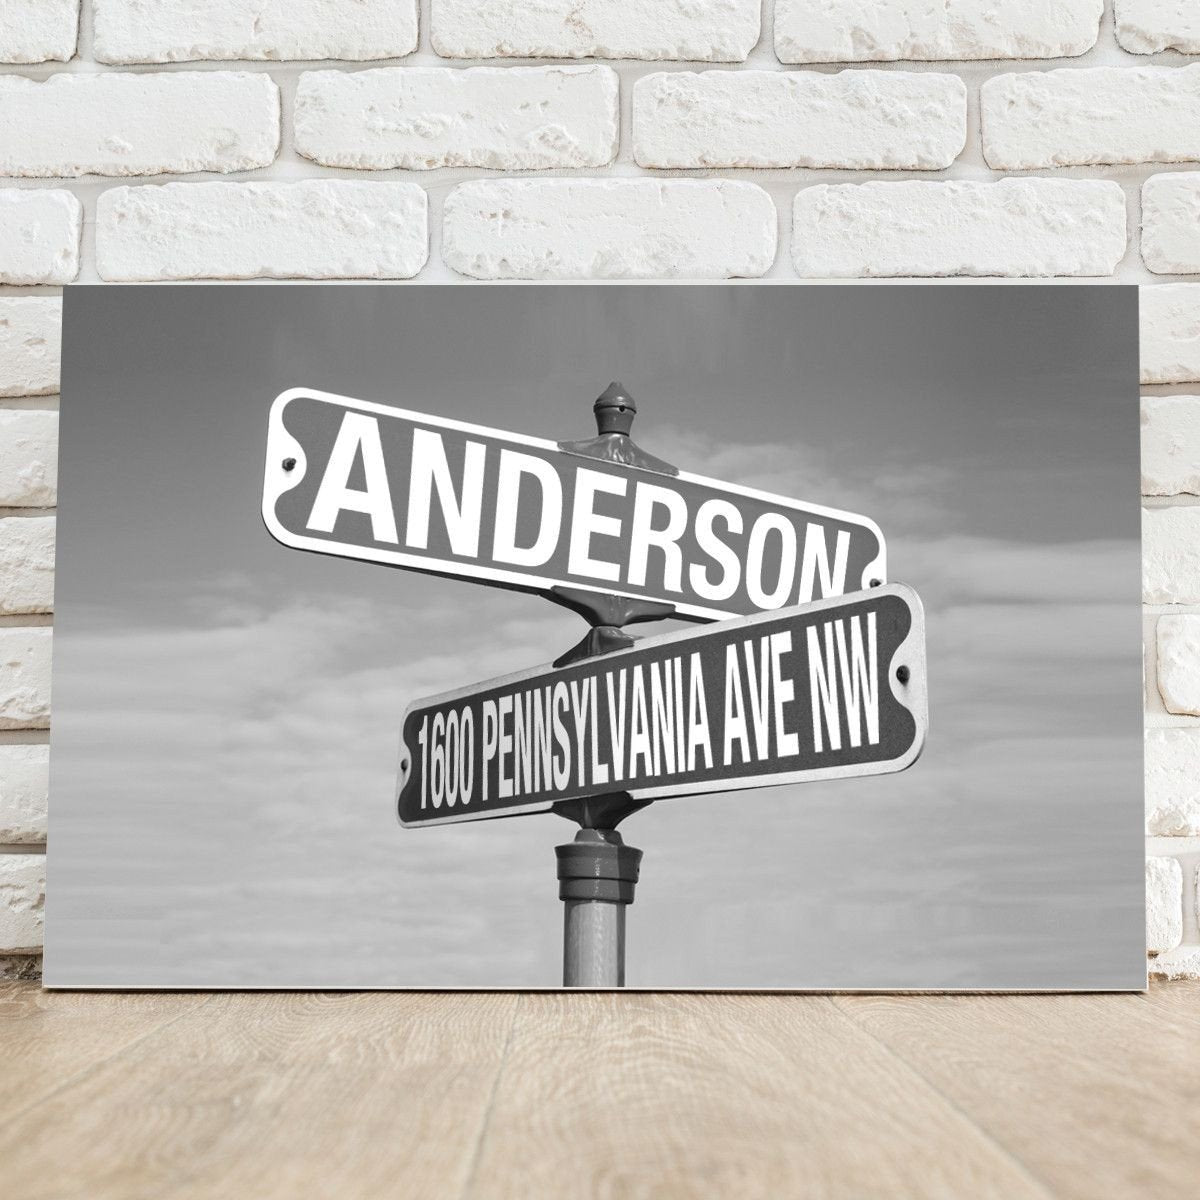 street canvas personalized signs intersection agiftpersonalized names gifts customize couples customized prints